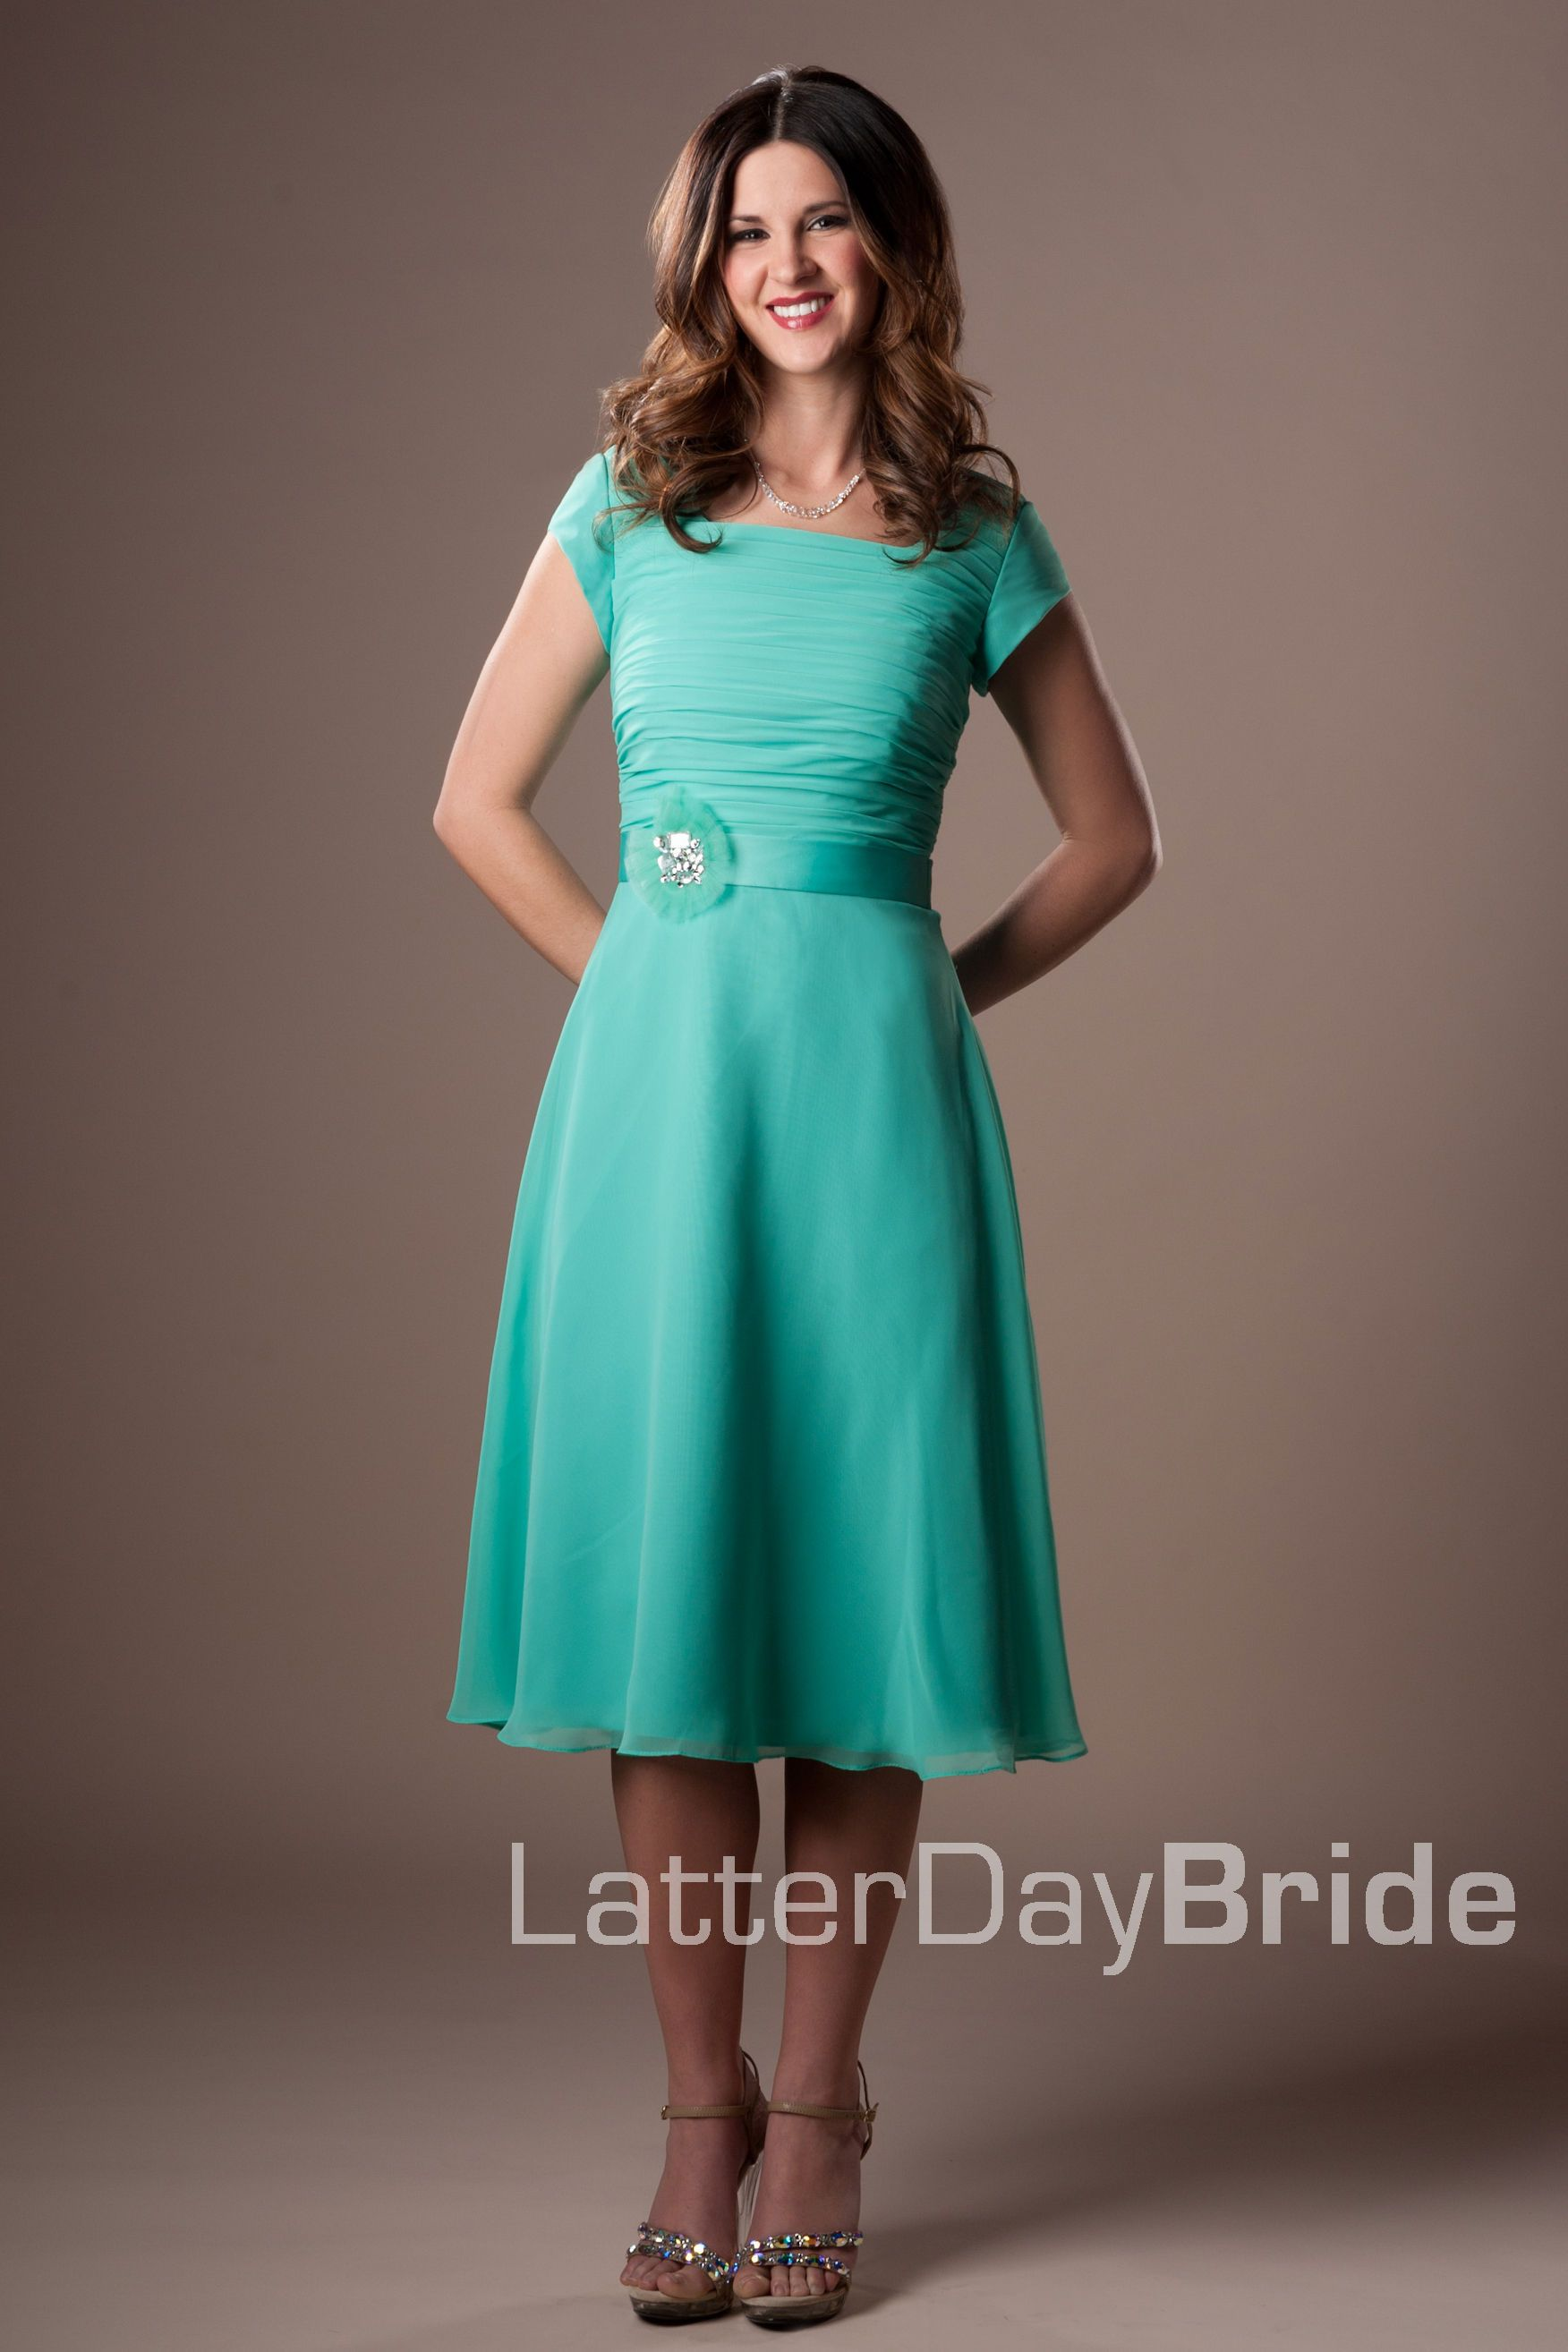 Bridesmaid prom angelina latterdaybride prom modest mormon bridesmaid prom angelina latterdaybride prom modest mormon lds bridesmaid dress ombrellifo Image collections